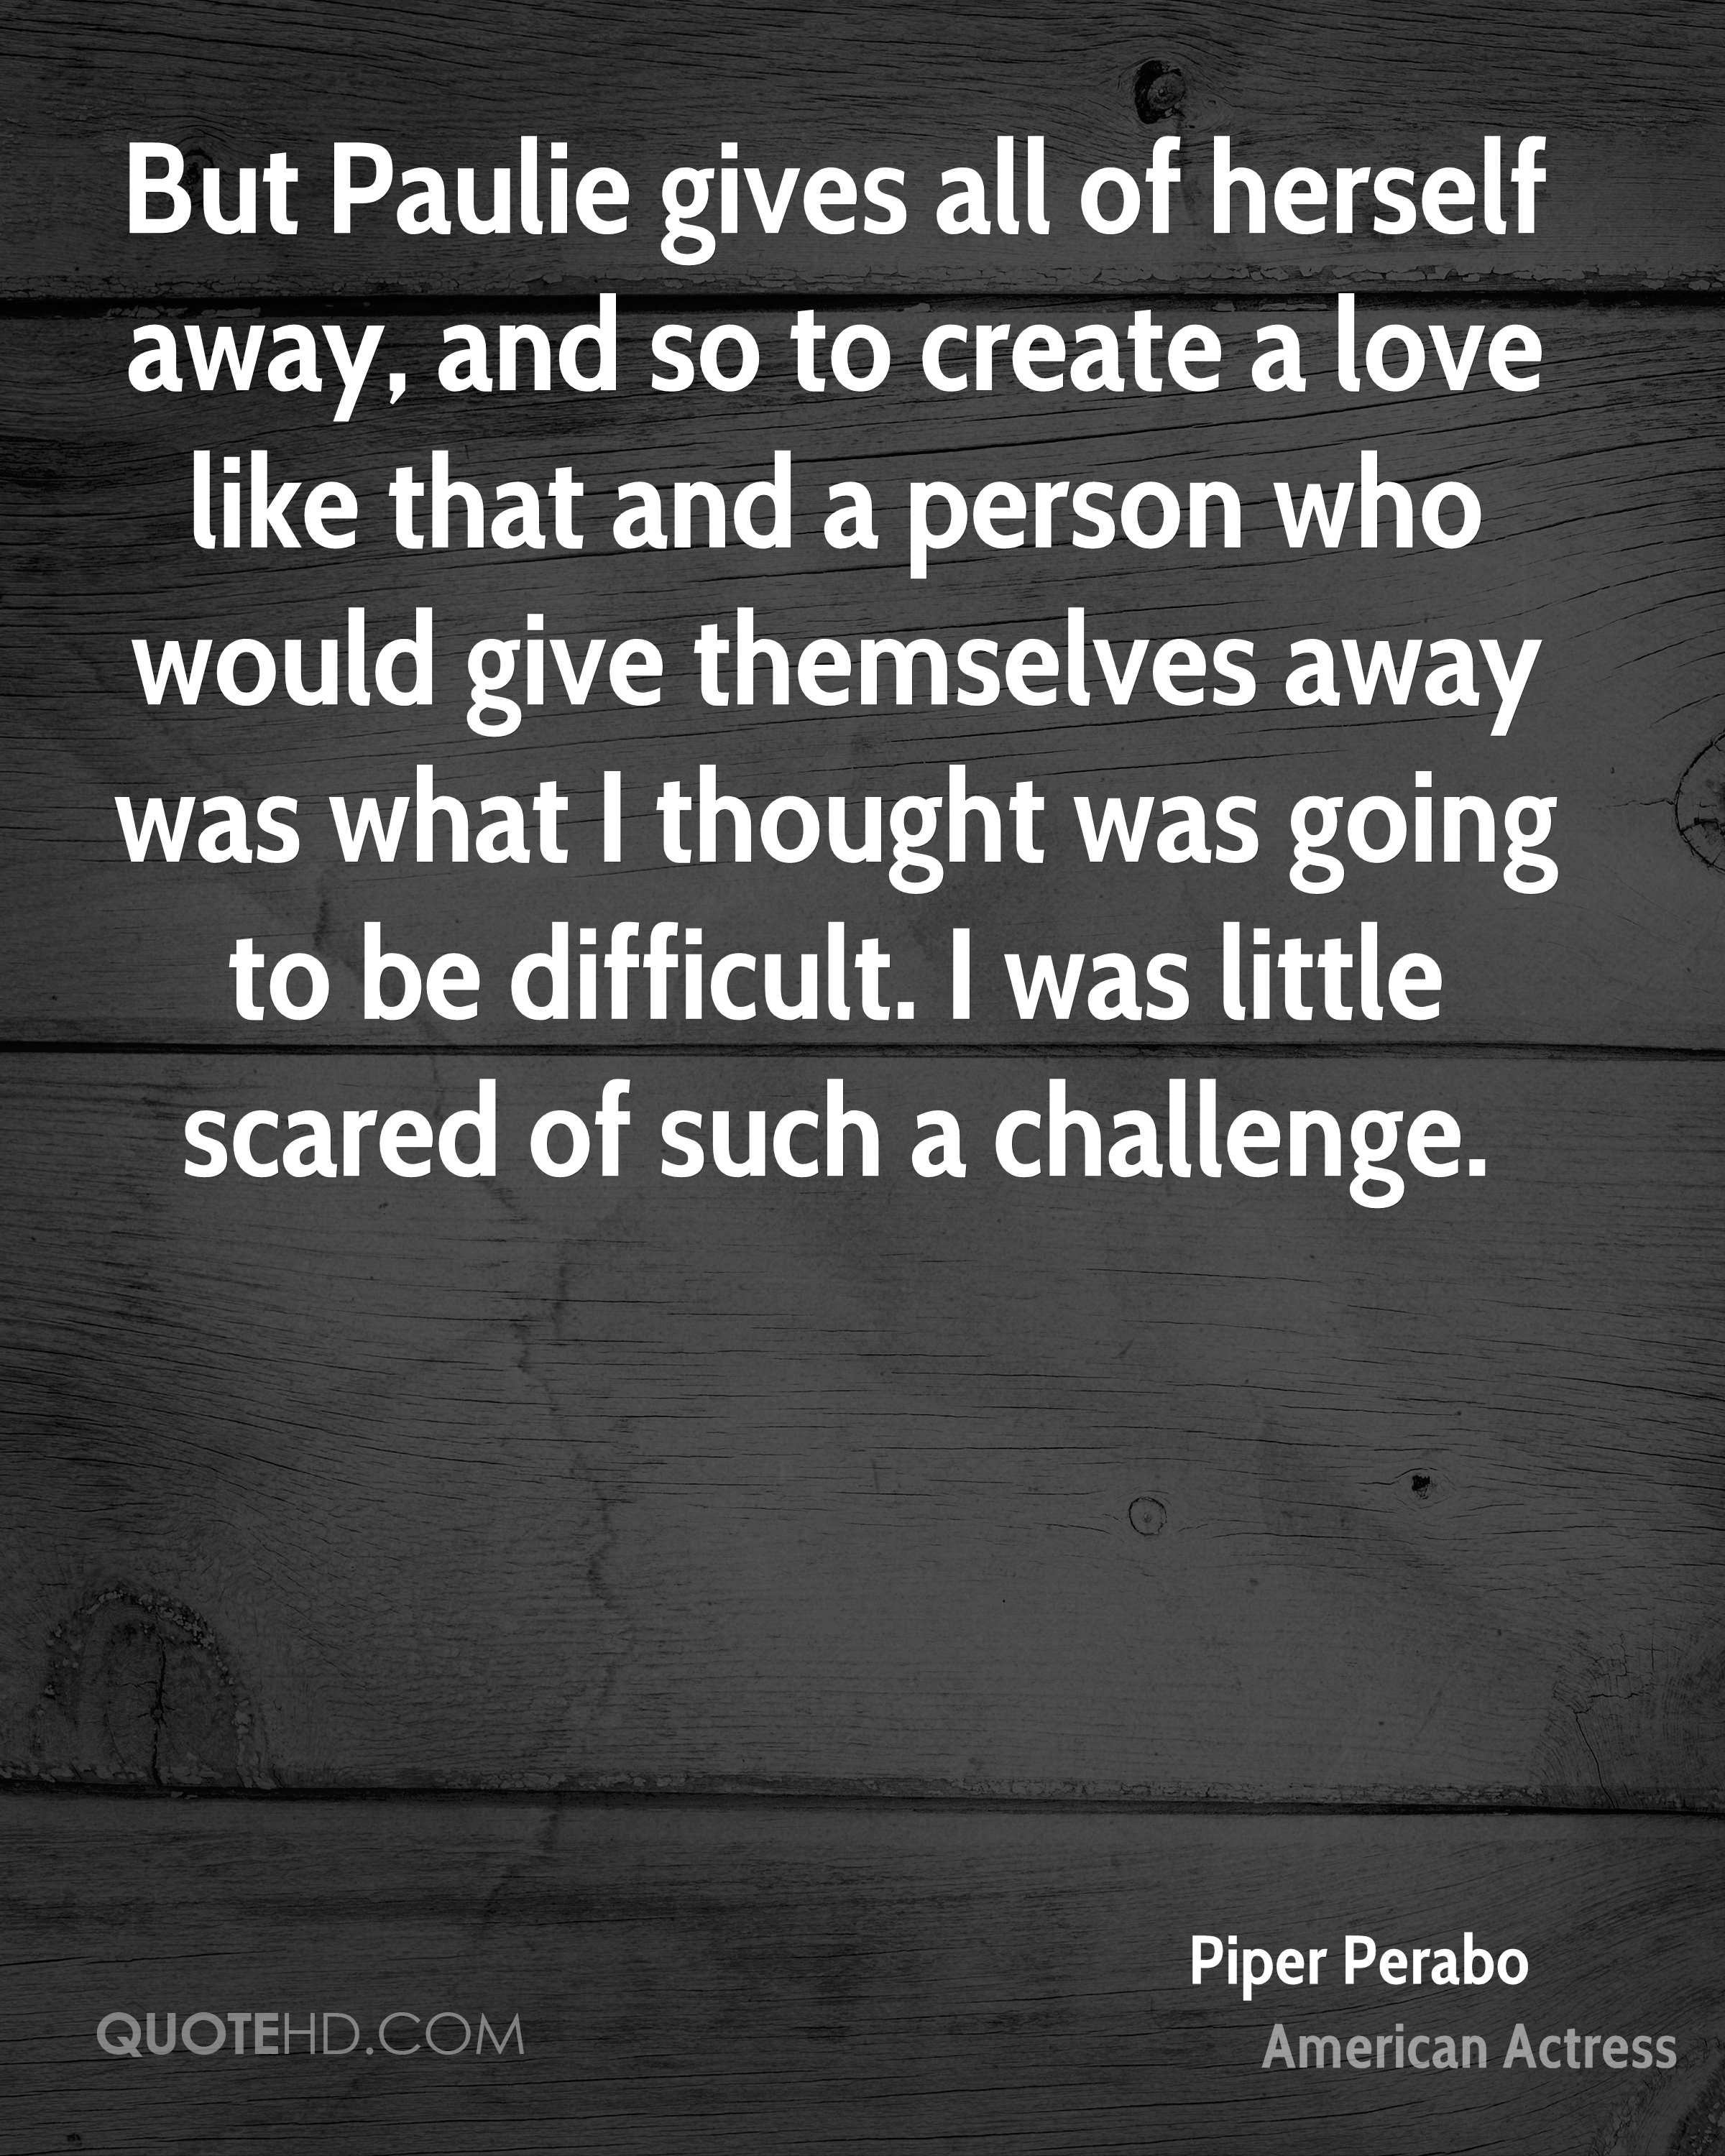 But Paulie gives all of herself away, and so to create a love like that and a person who would give themselves away was what I thought was going to be difficult. I was little scared of such a challenge.